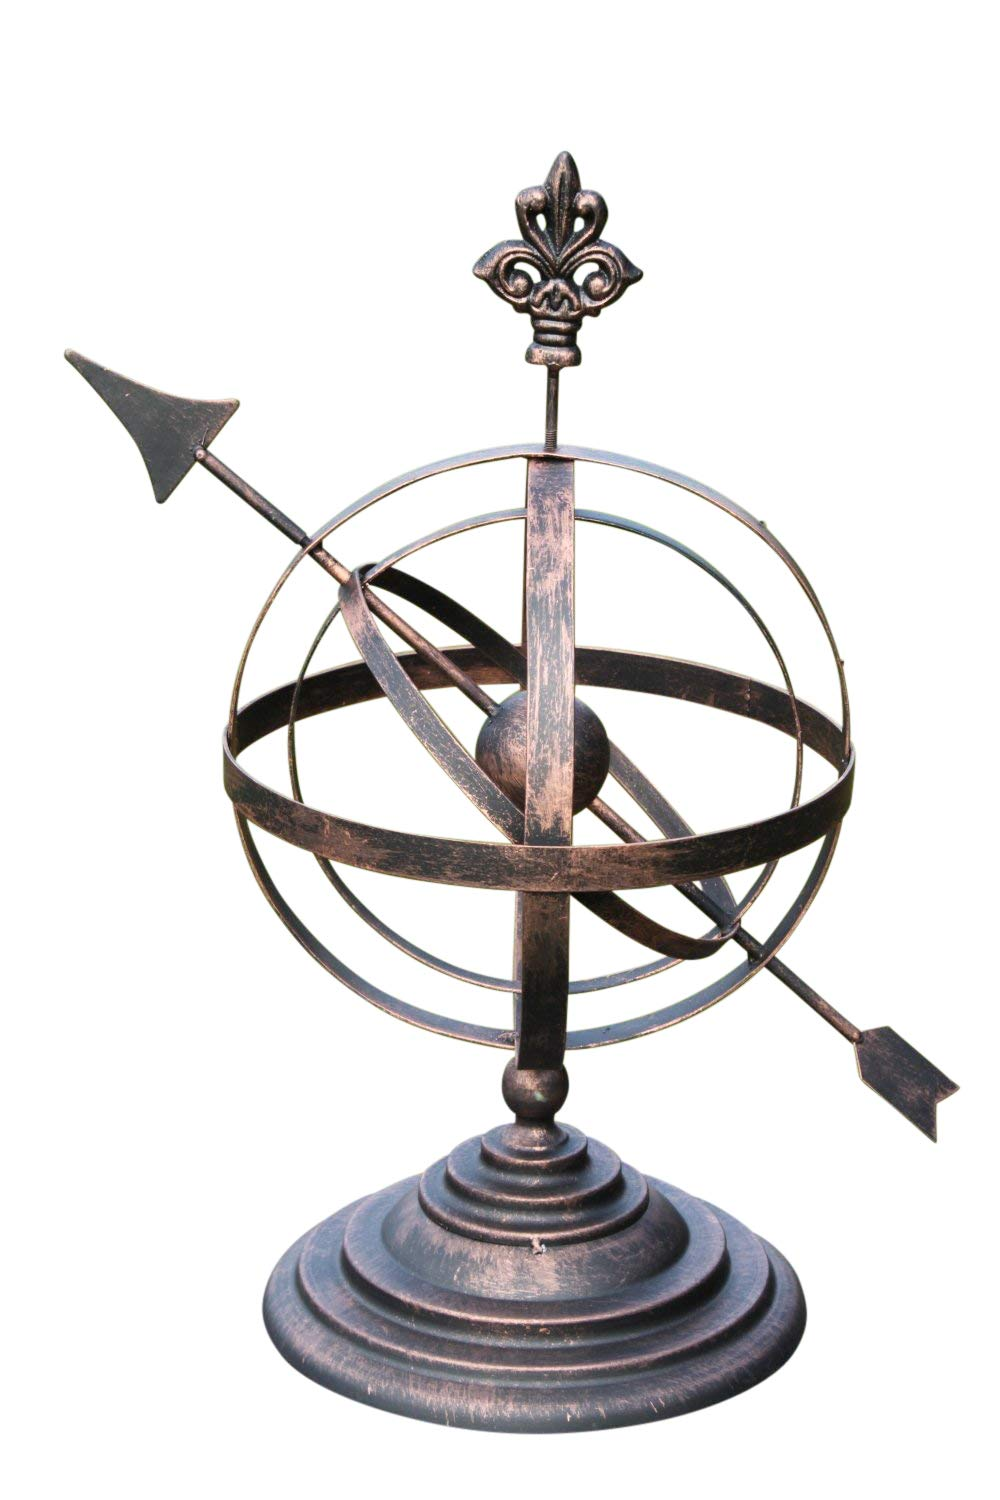 Garden Market Place Steel Decorative Armillary Sundial in an Antique Bronze Finish OLIVE GROVE